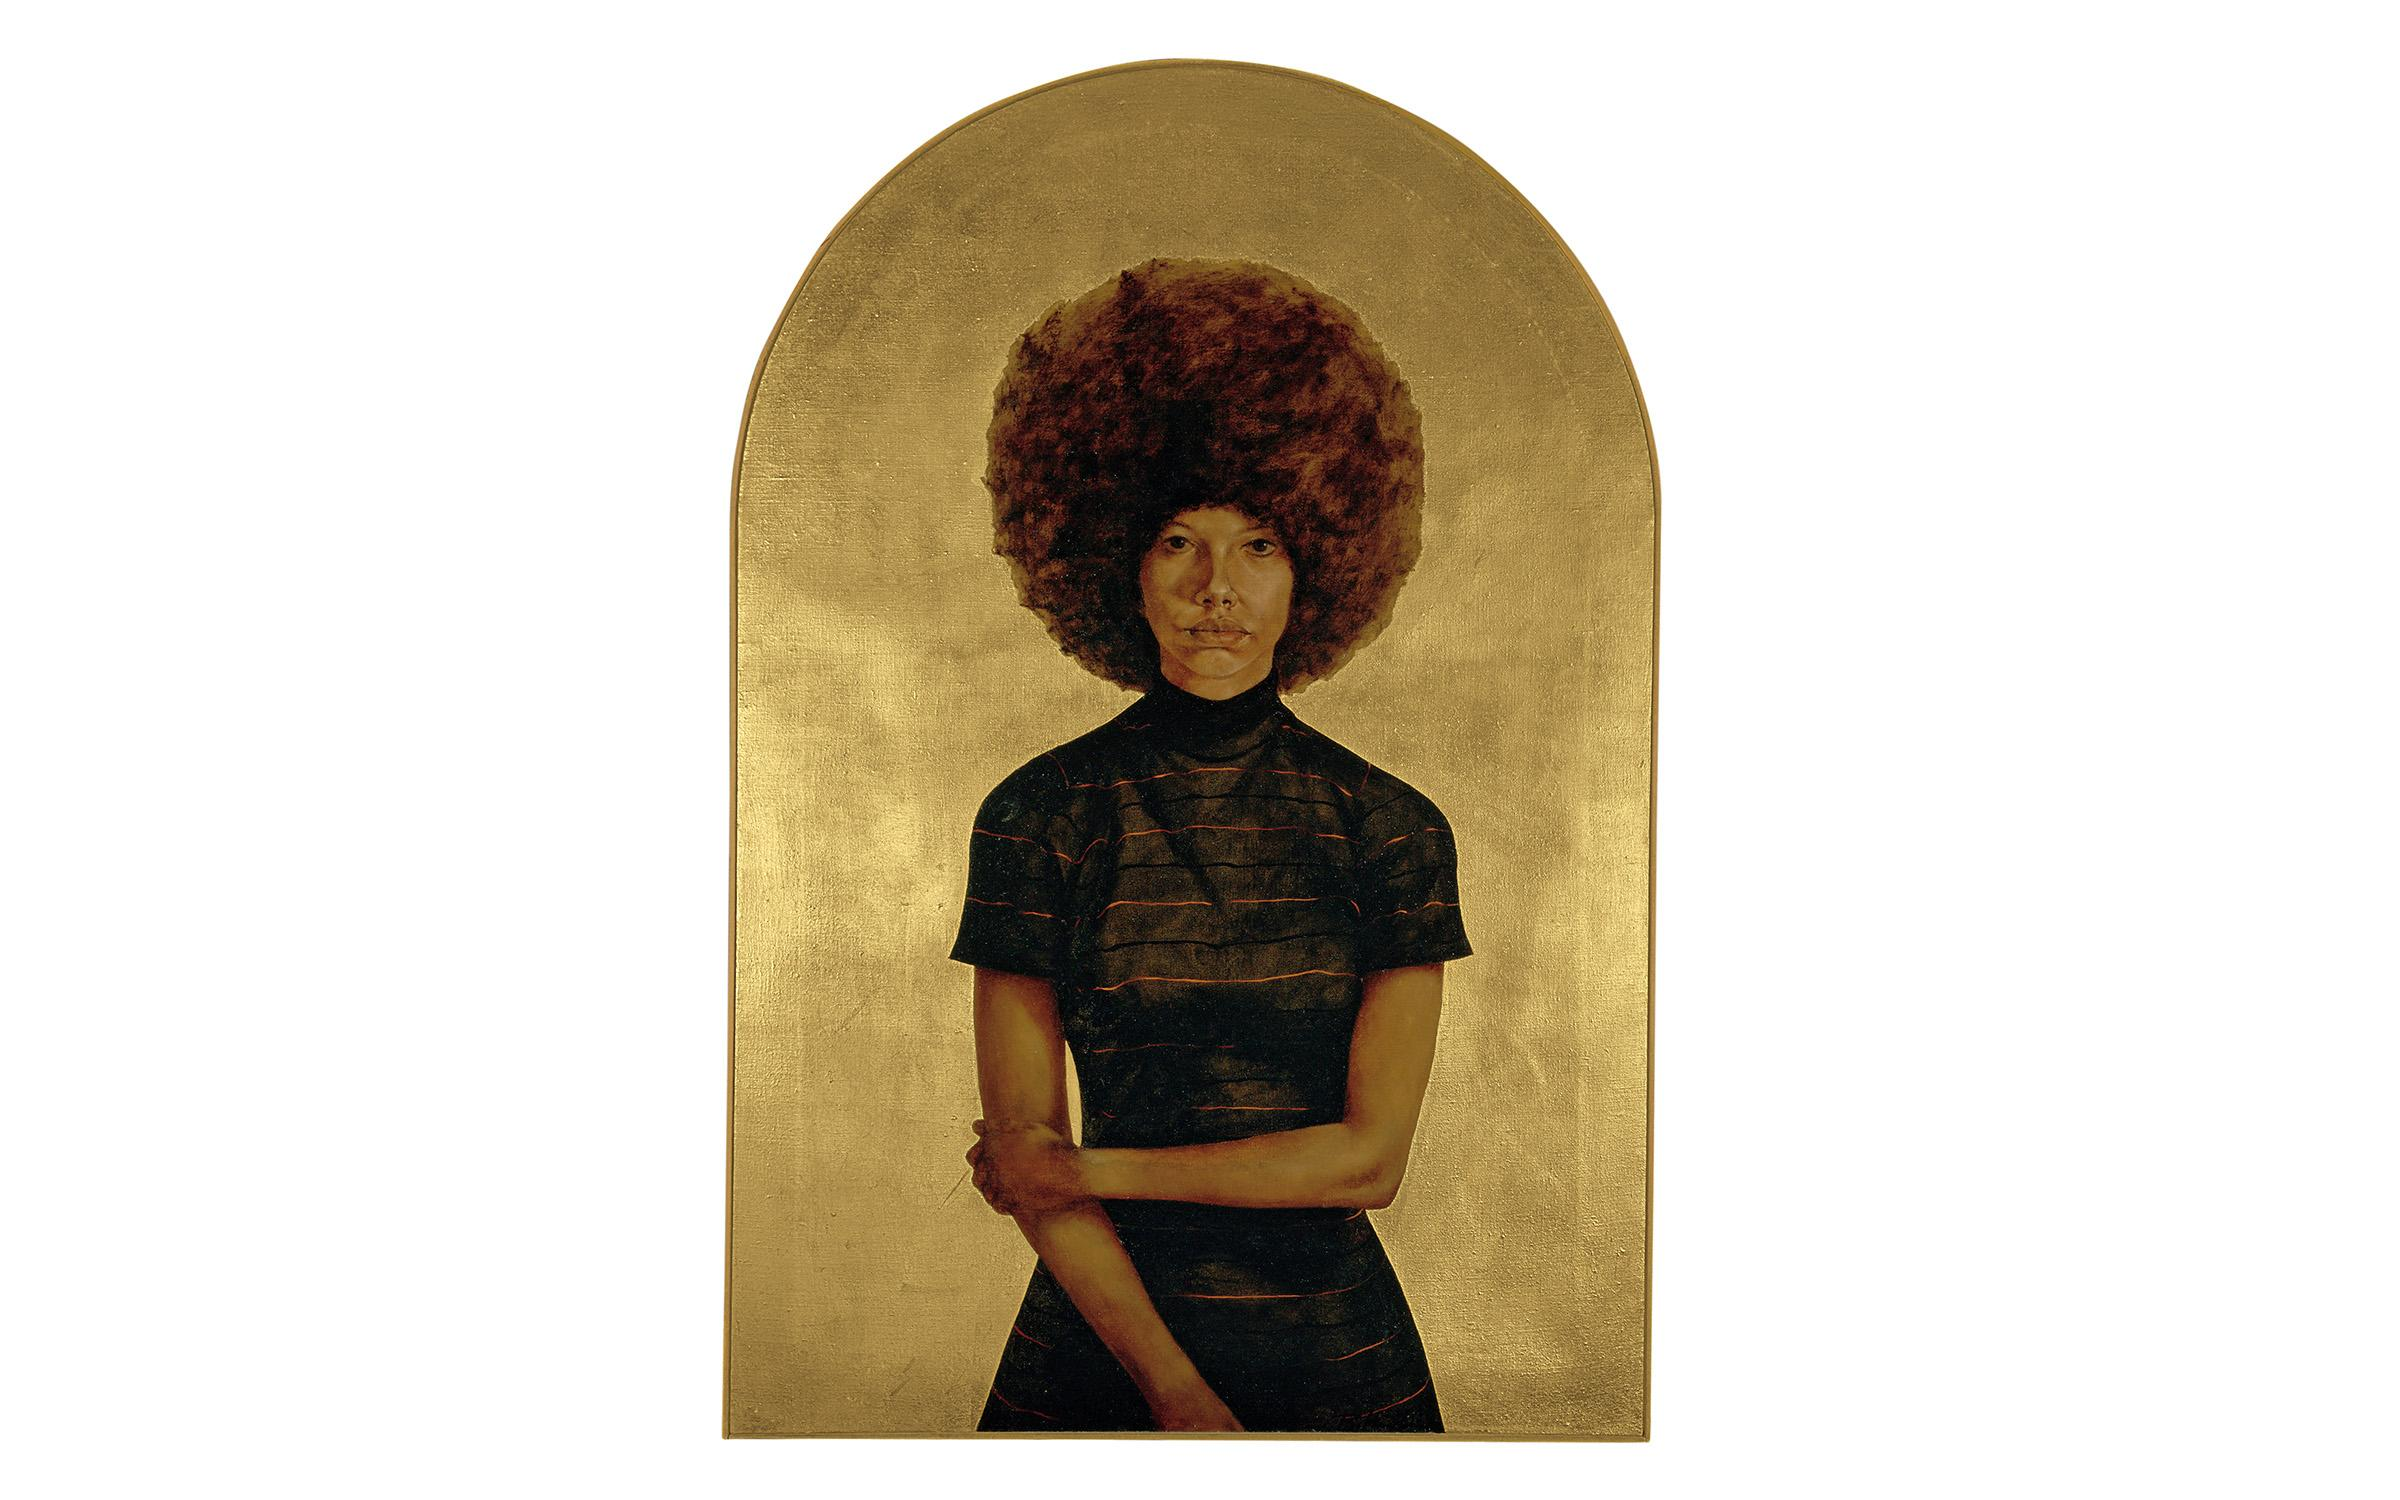 Hendricks, L. Barkley, Lawdy Mama,1969, oil and gold leaf on canvas. Published by The Studio Museum in Harlem, gift of Stuart Liebman, in memory of Joseph B. Liebman, 1983.25. © Estate of Barkley L. Hendricks.